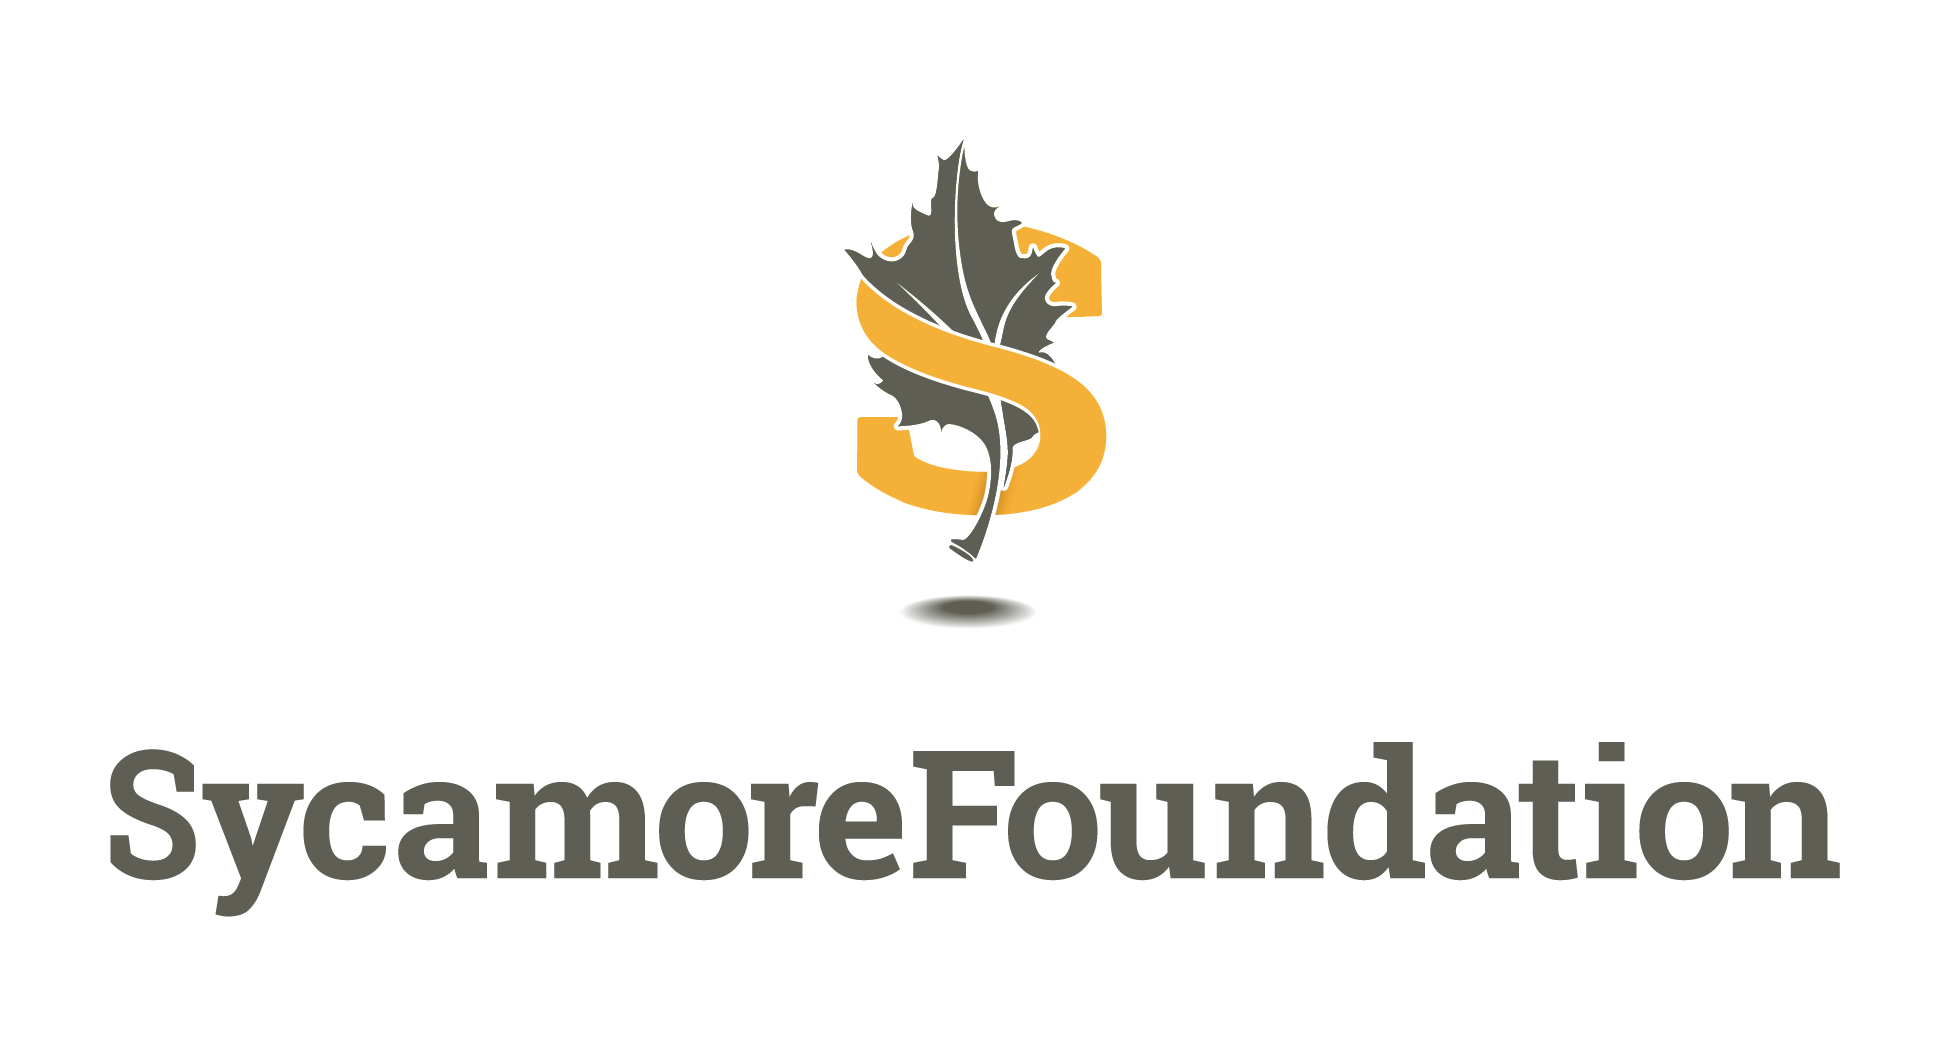 Sycamore Foundation